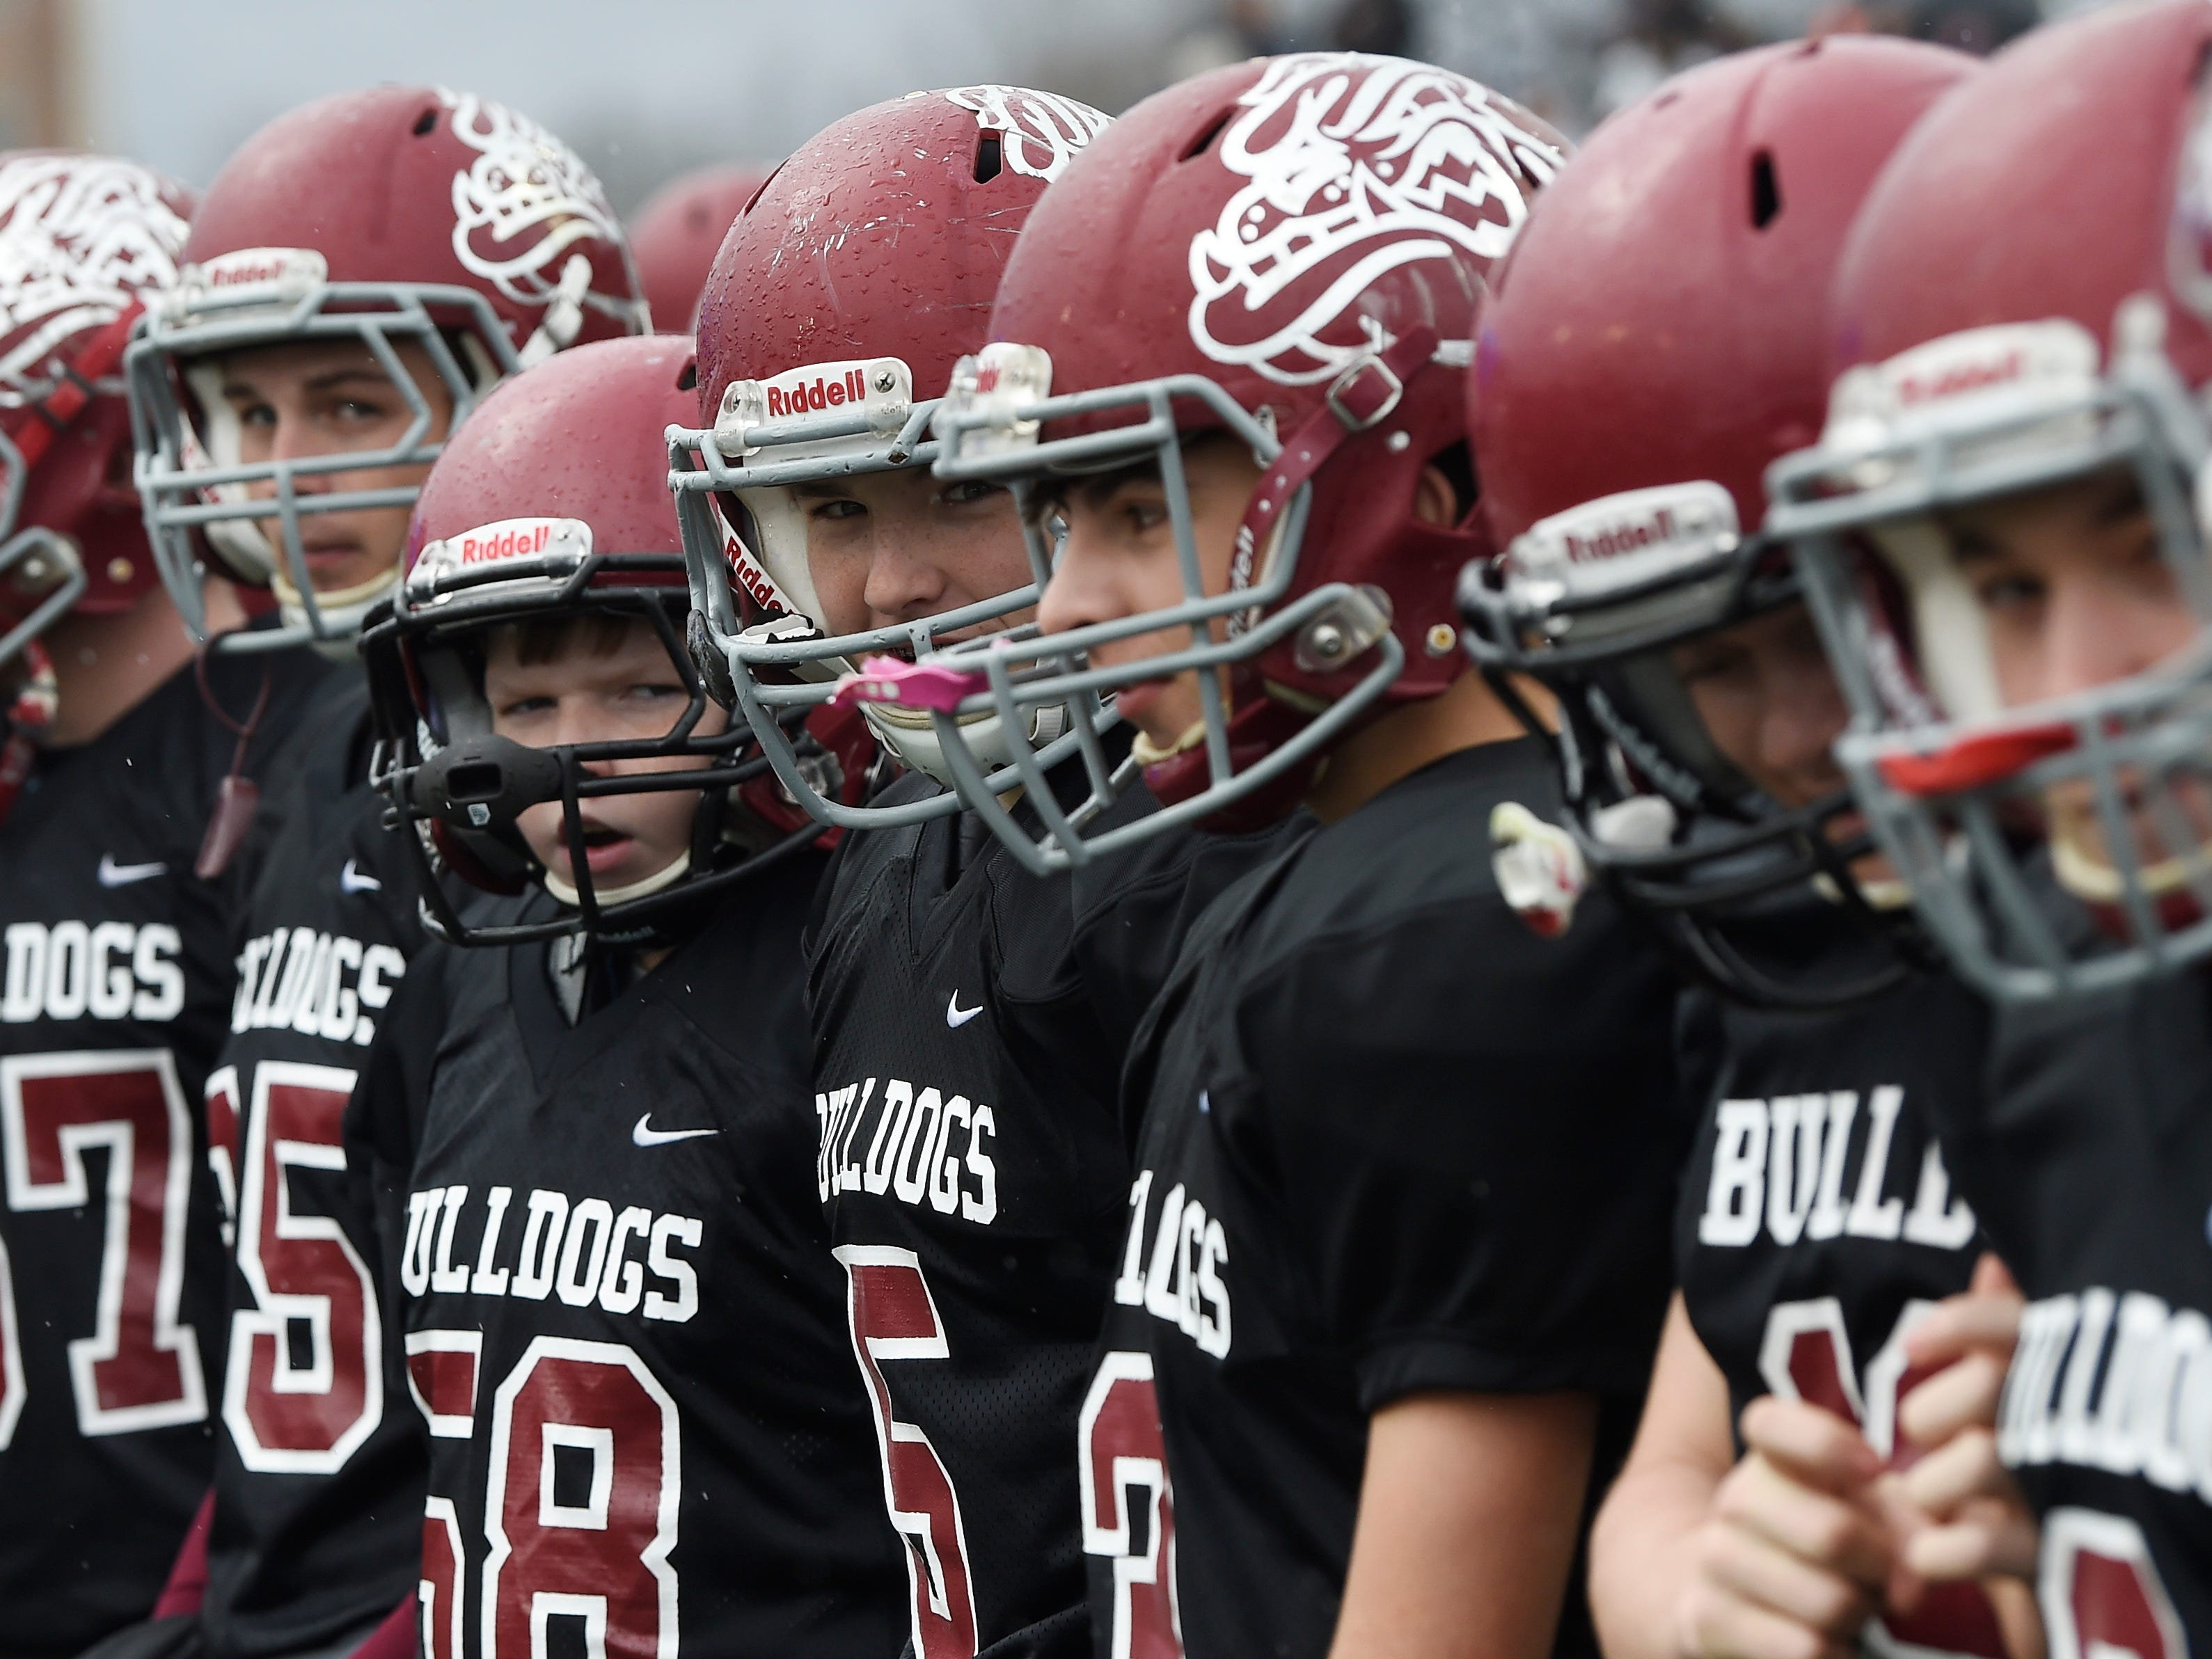 Cornersville players line up before the Class I-A BlueCross Bowl state championship at Tennessee Tech's Tucker Stadium in Cookeville, Tenn., on Saturday, Dec. 1, 2018.